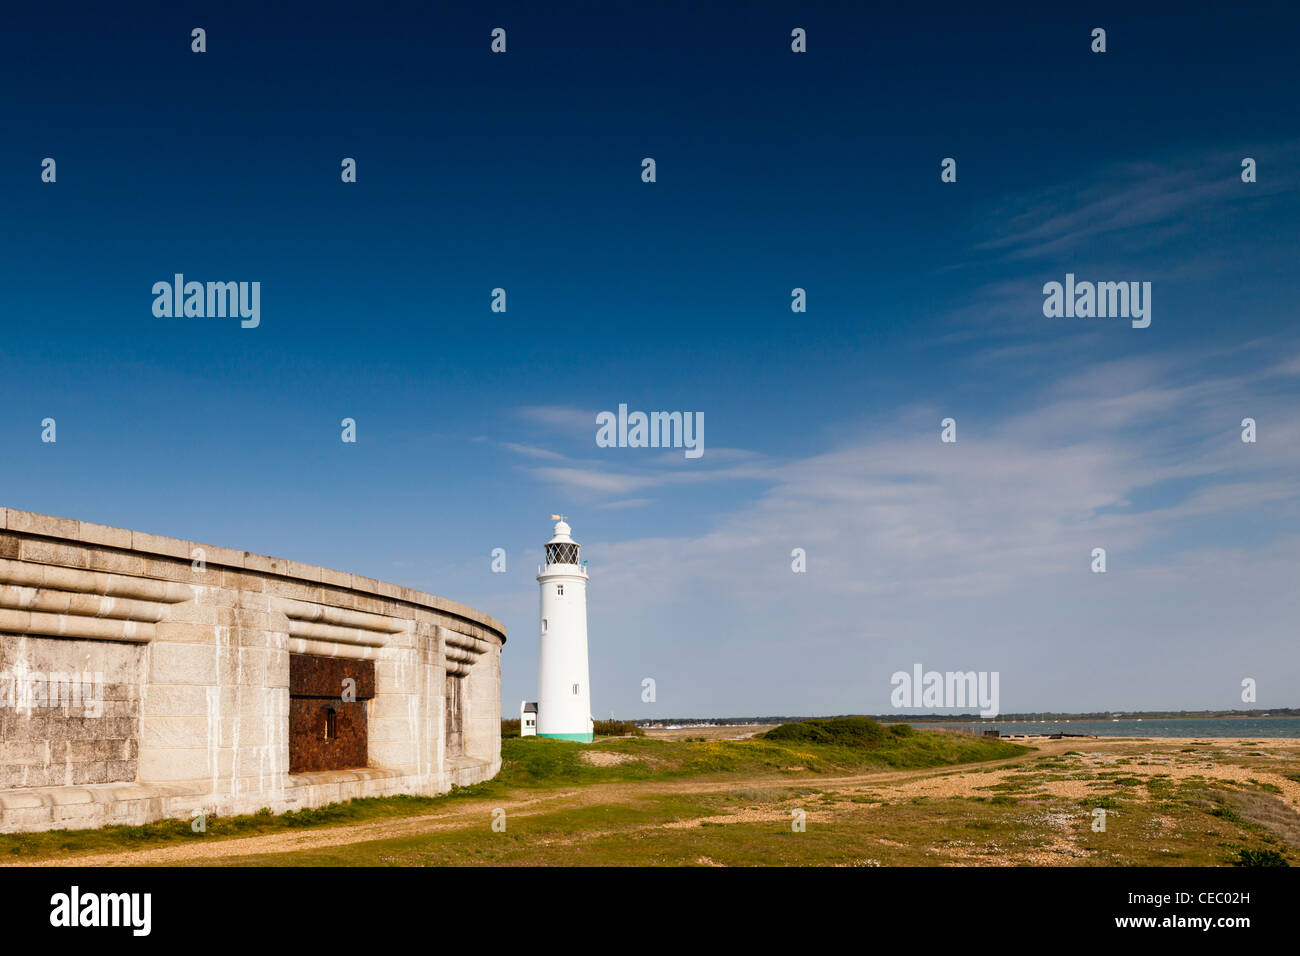 The lighthouse at Hurst Point, on the Solent in Hampshire, England. - Stock Image